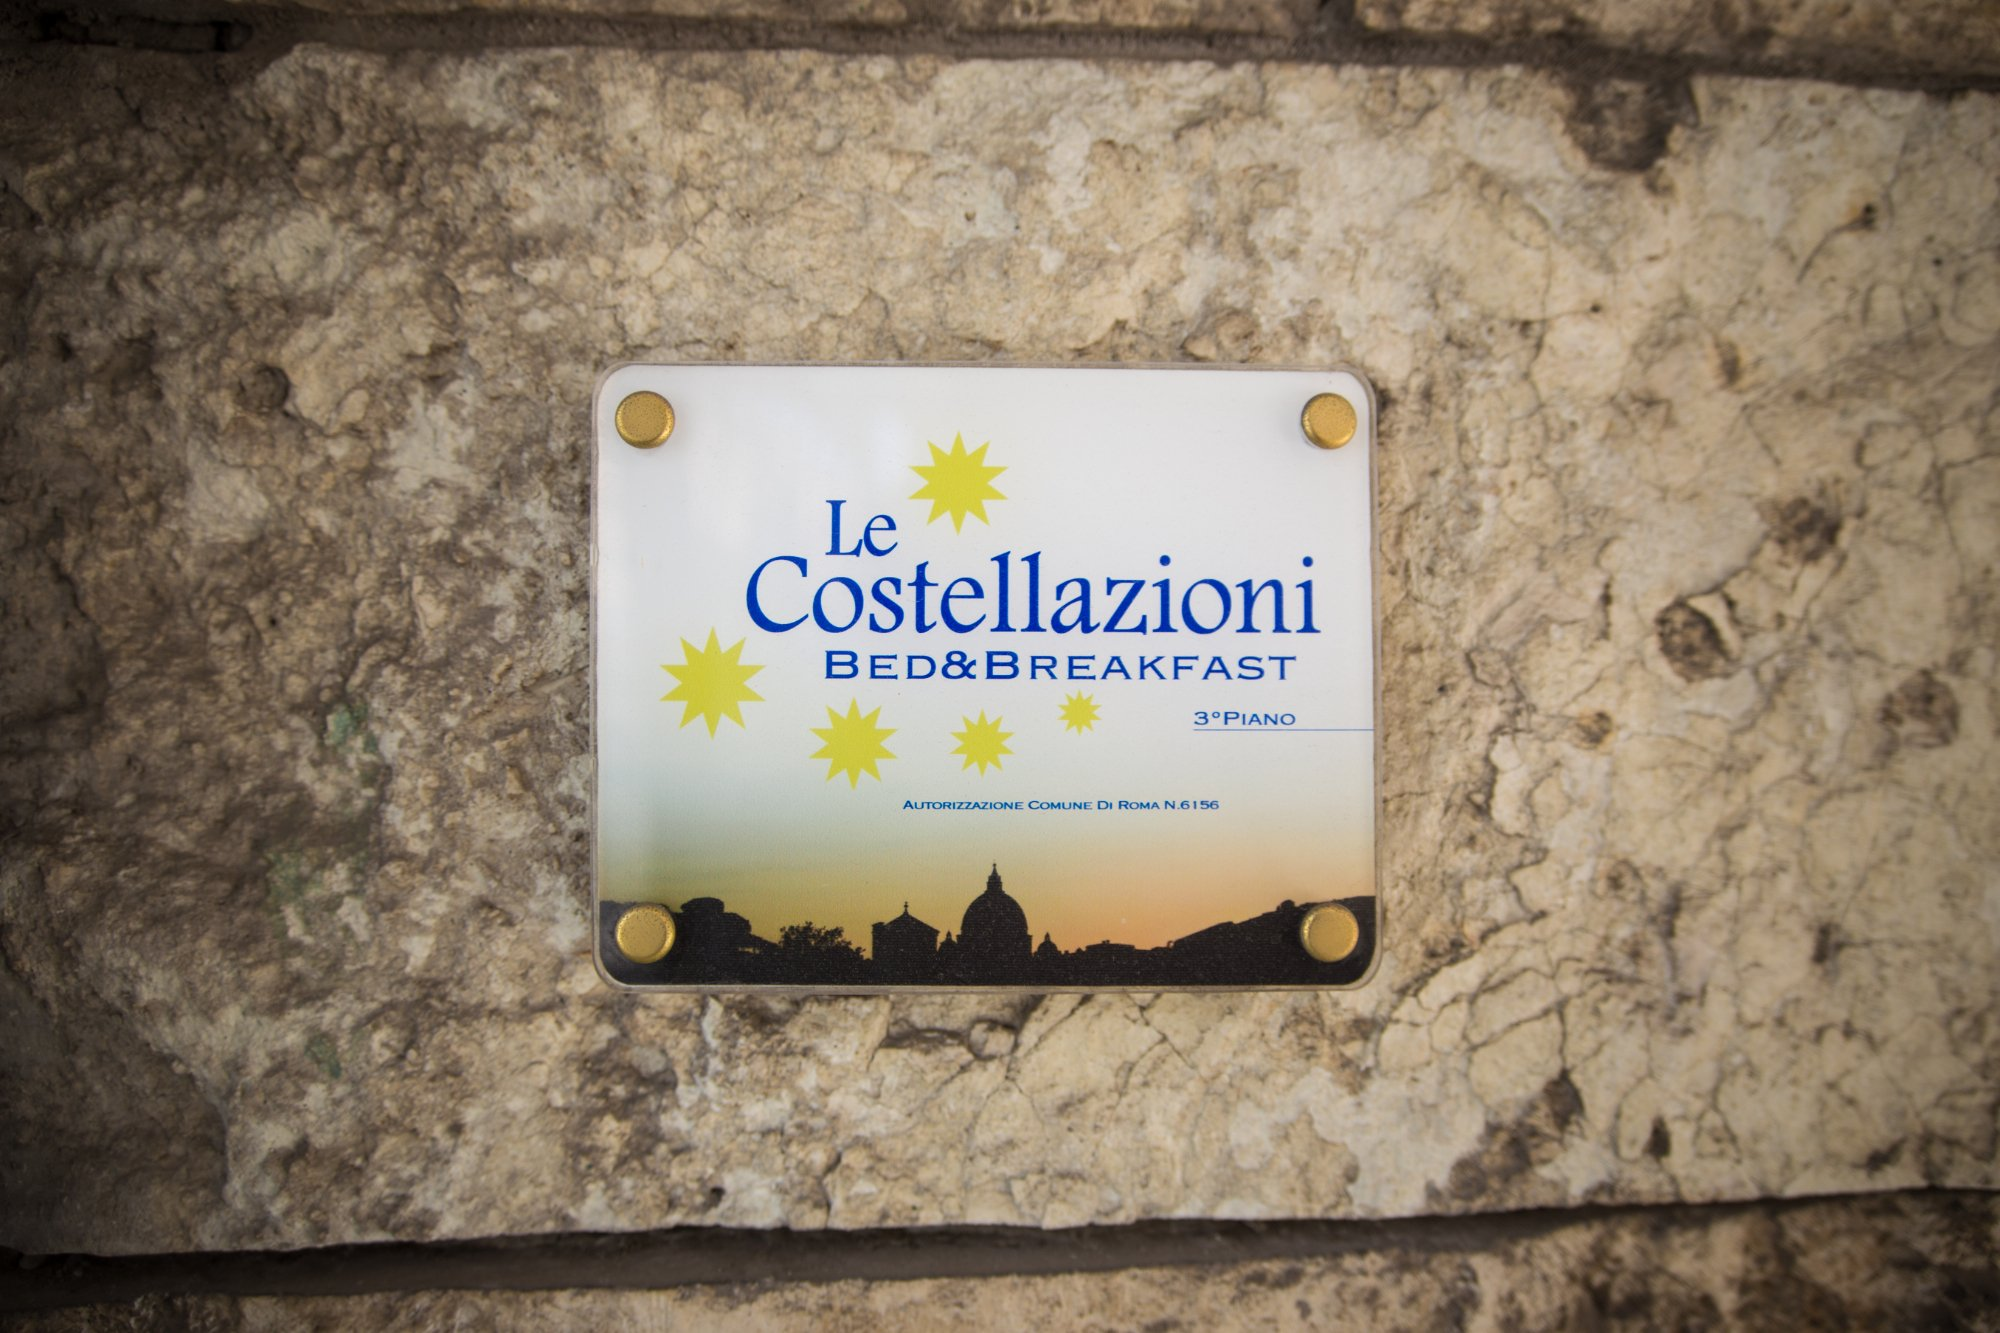 Bed & Breakfast Le Costellazioni